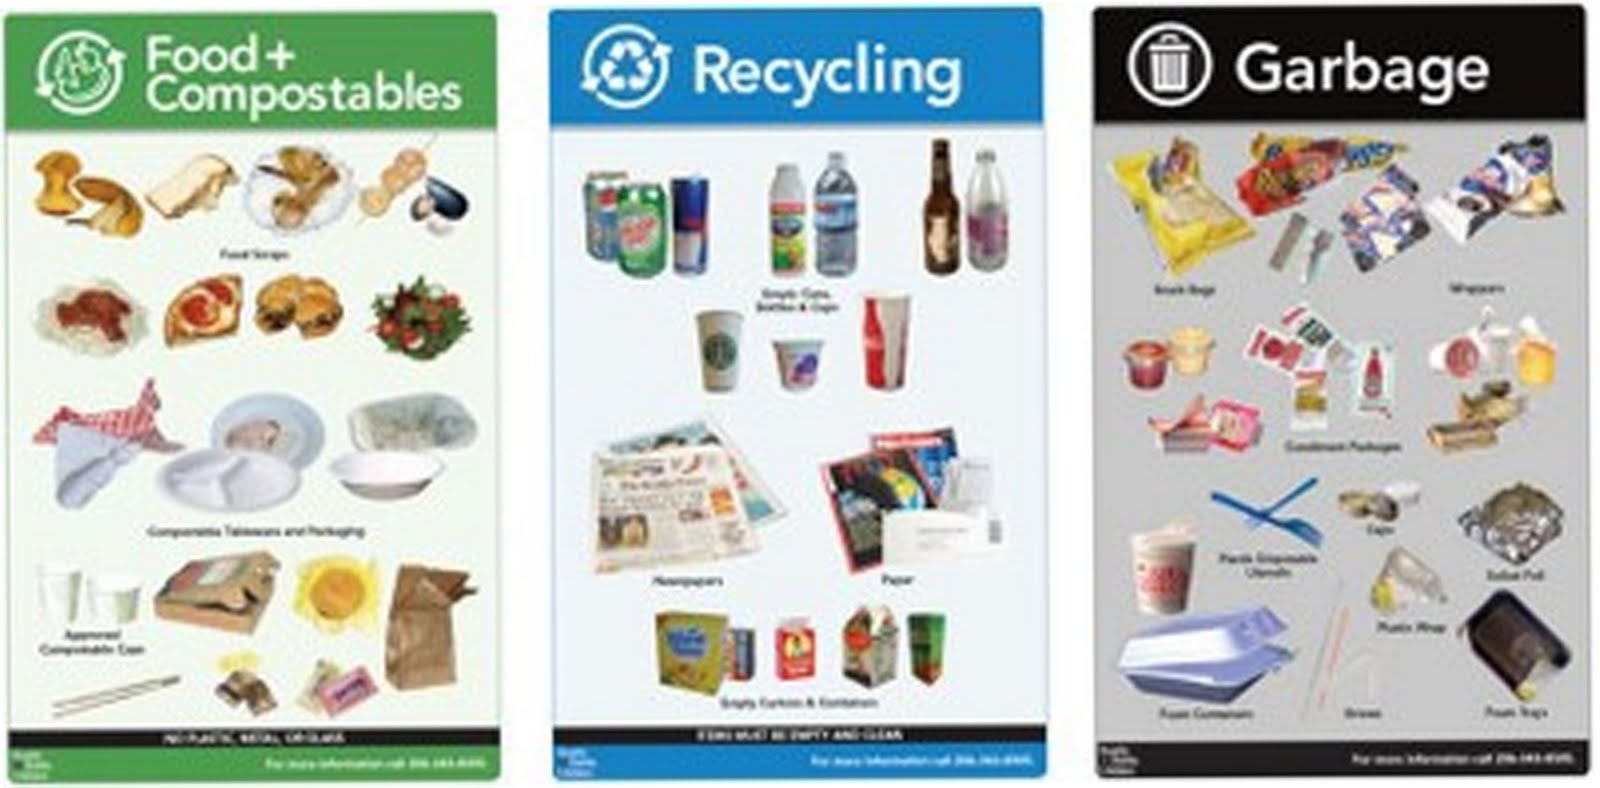 city of kingston recycling guide